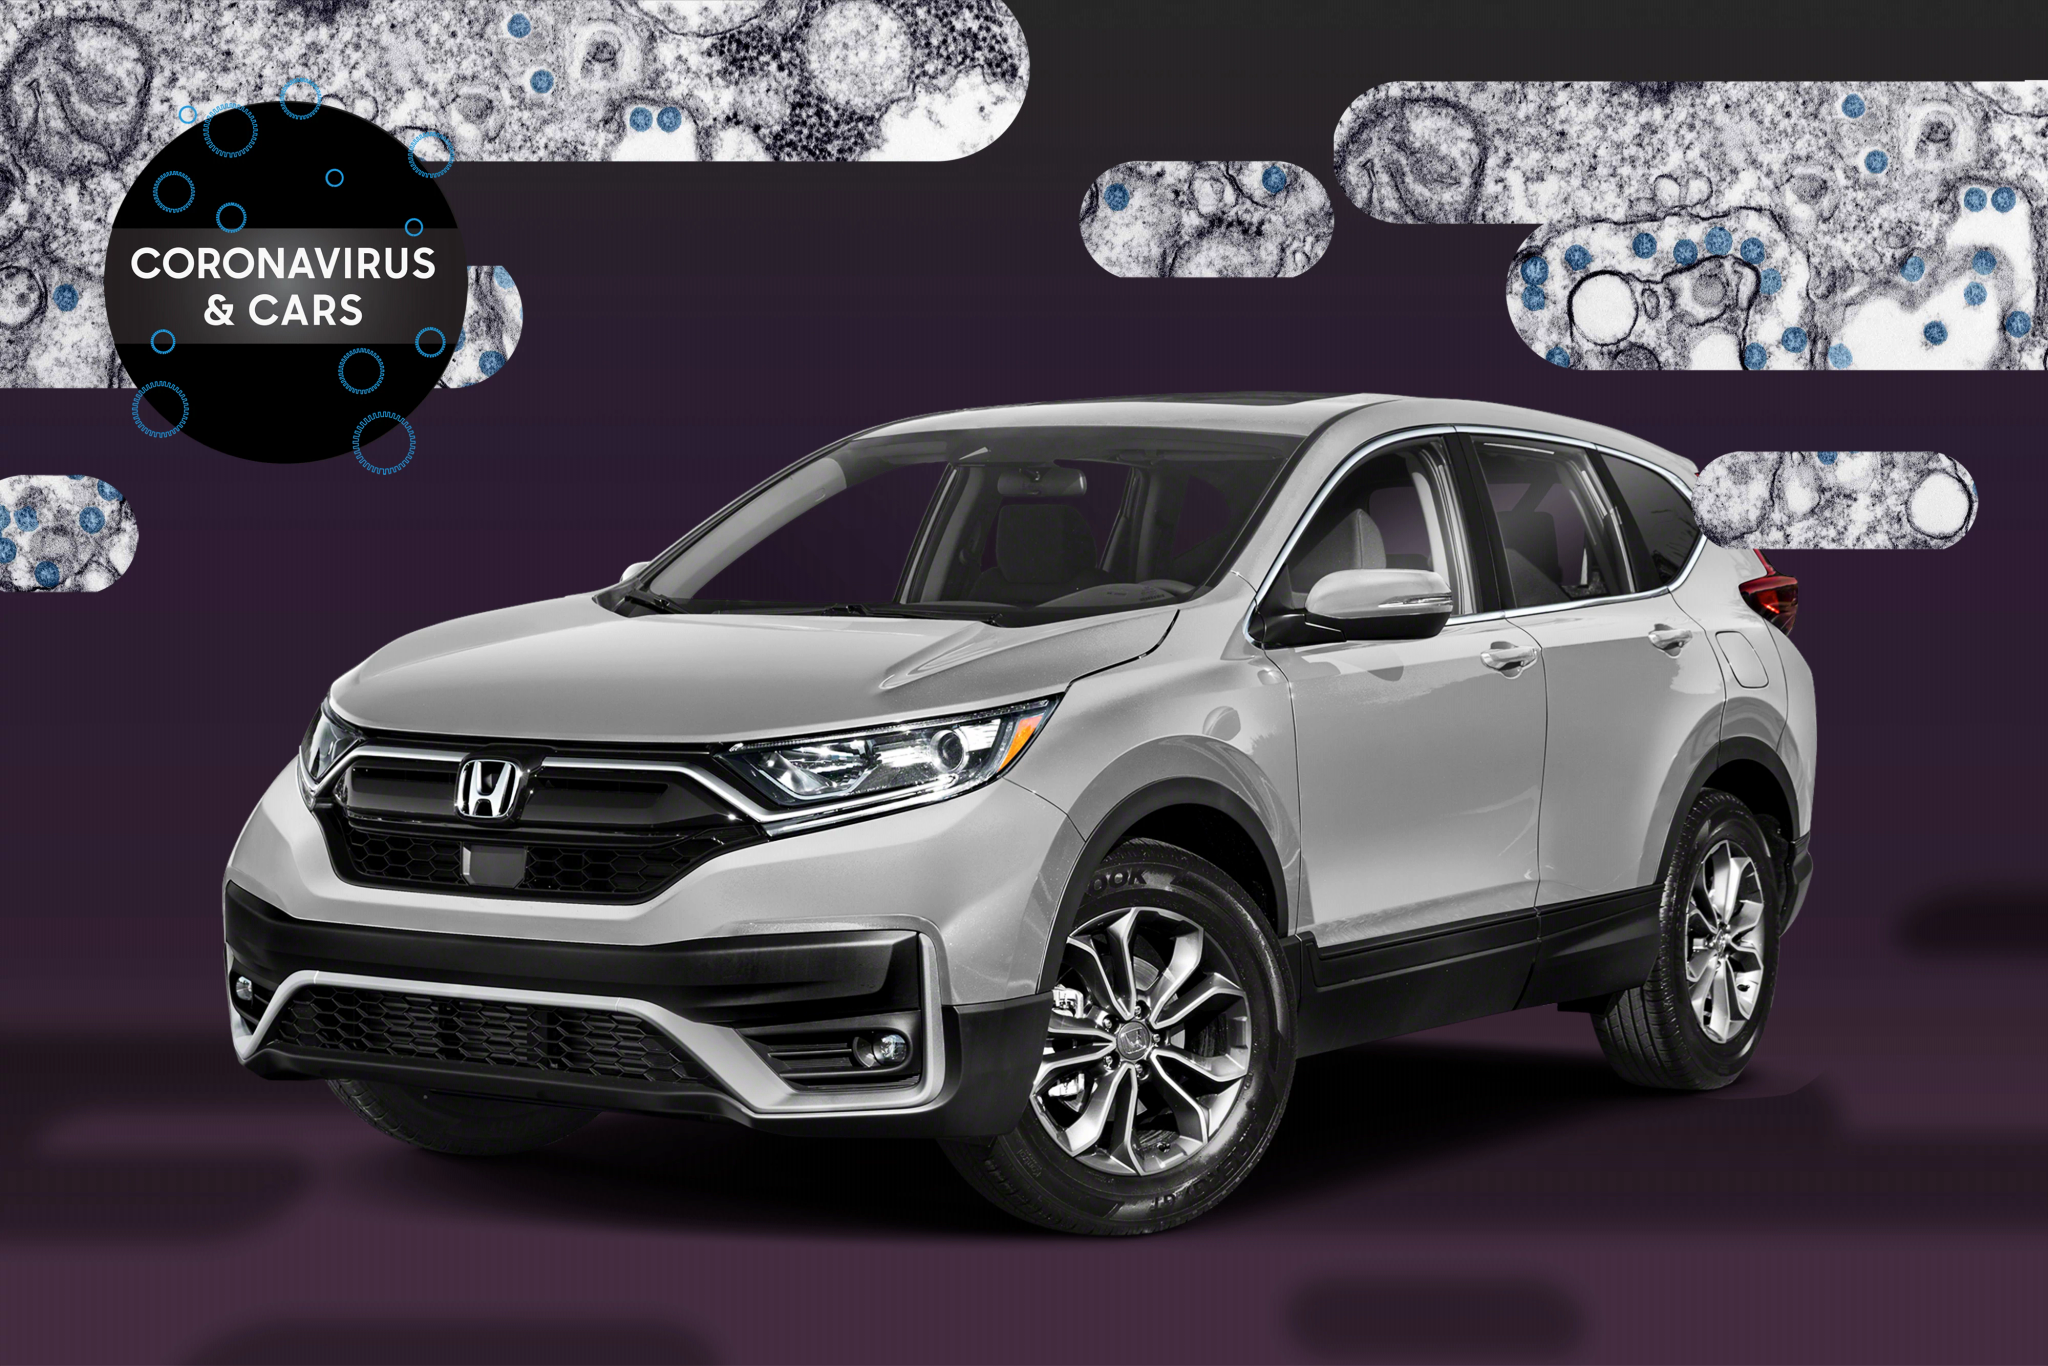 10 Biggest News Stories of the Week: Coronavirus Overshadows Honda CR-V — and Everything Else